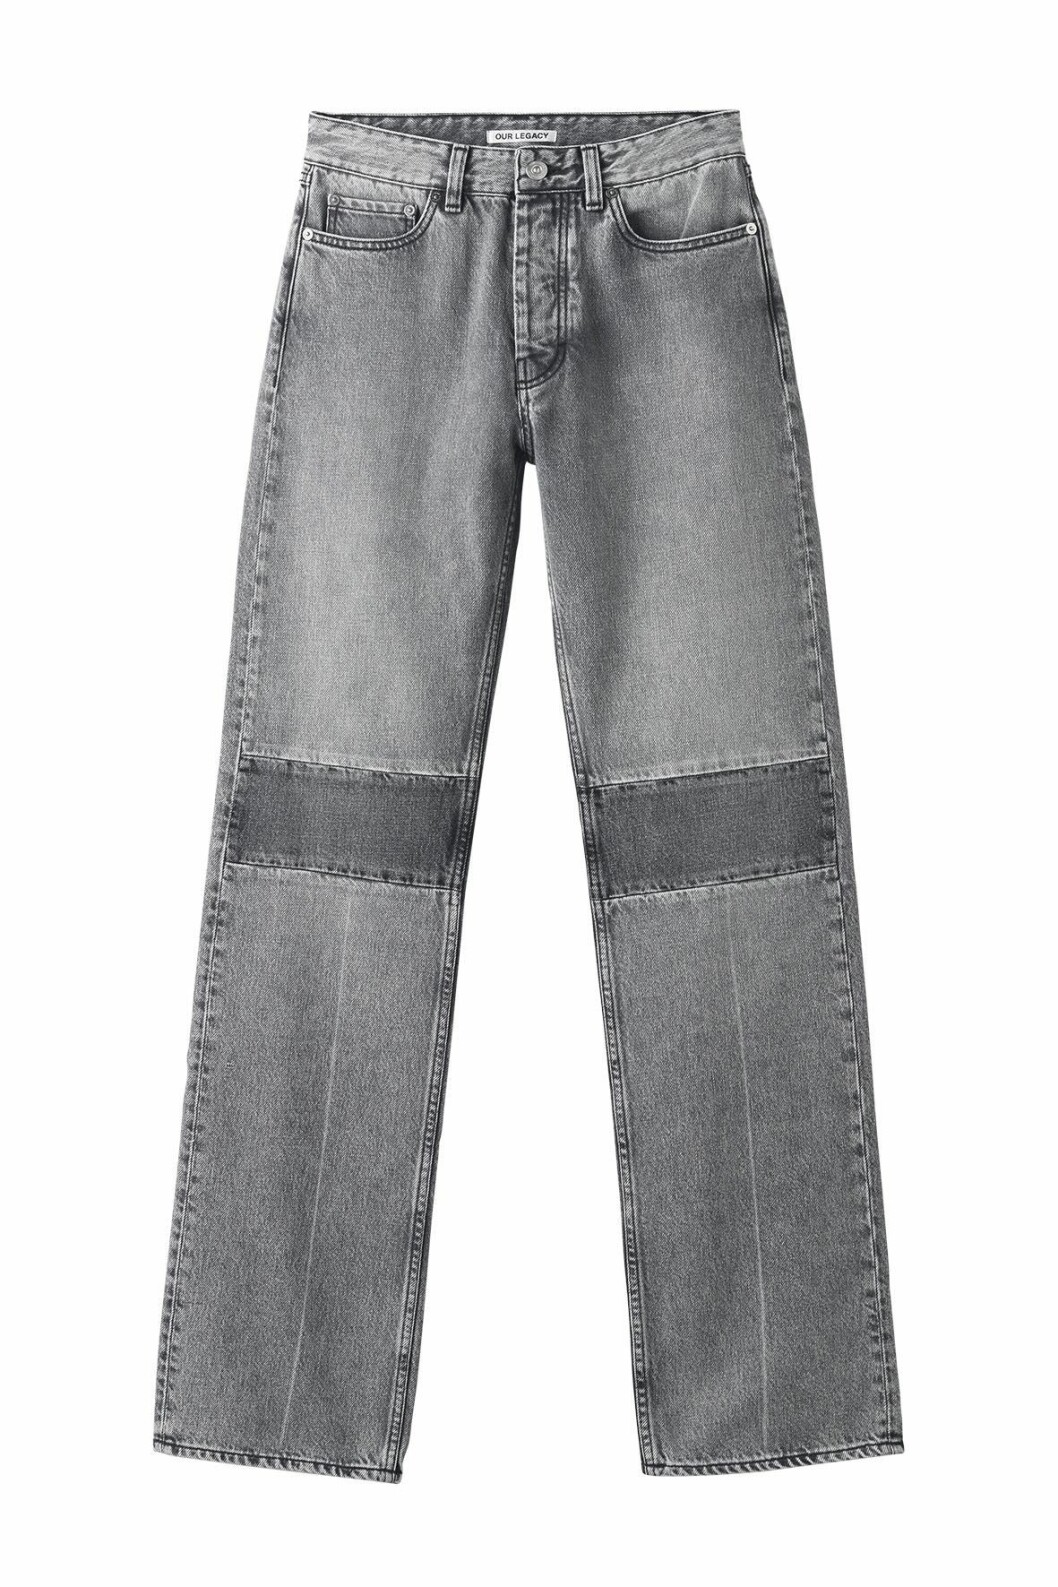 Our Legacy Extended Linear cut denim